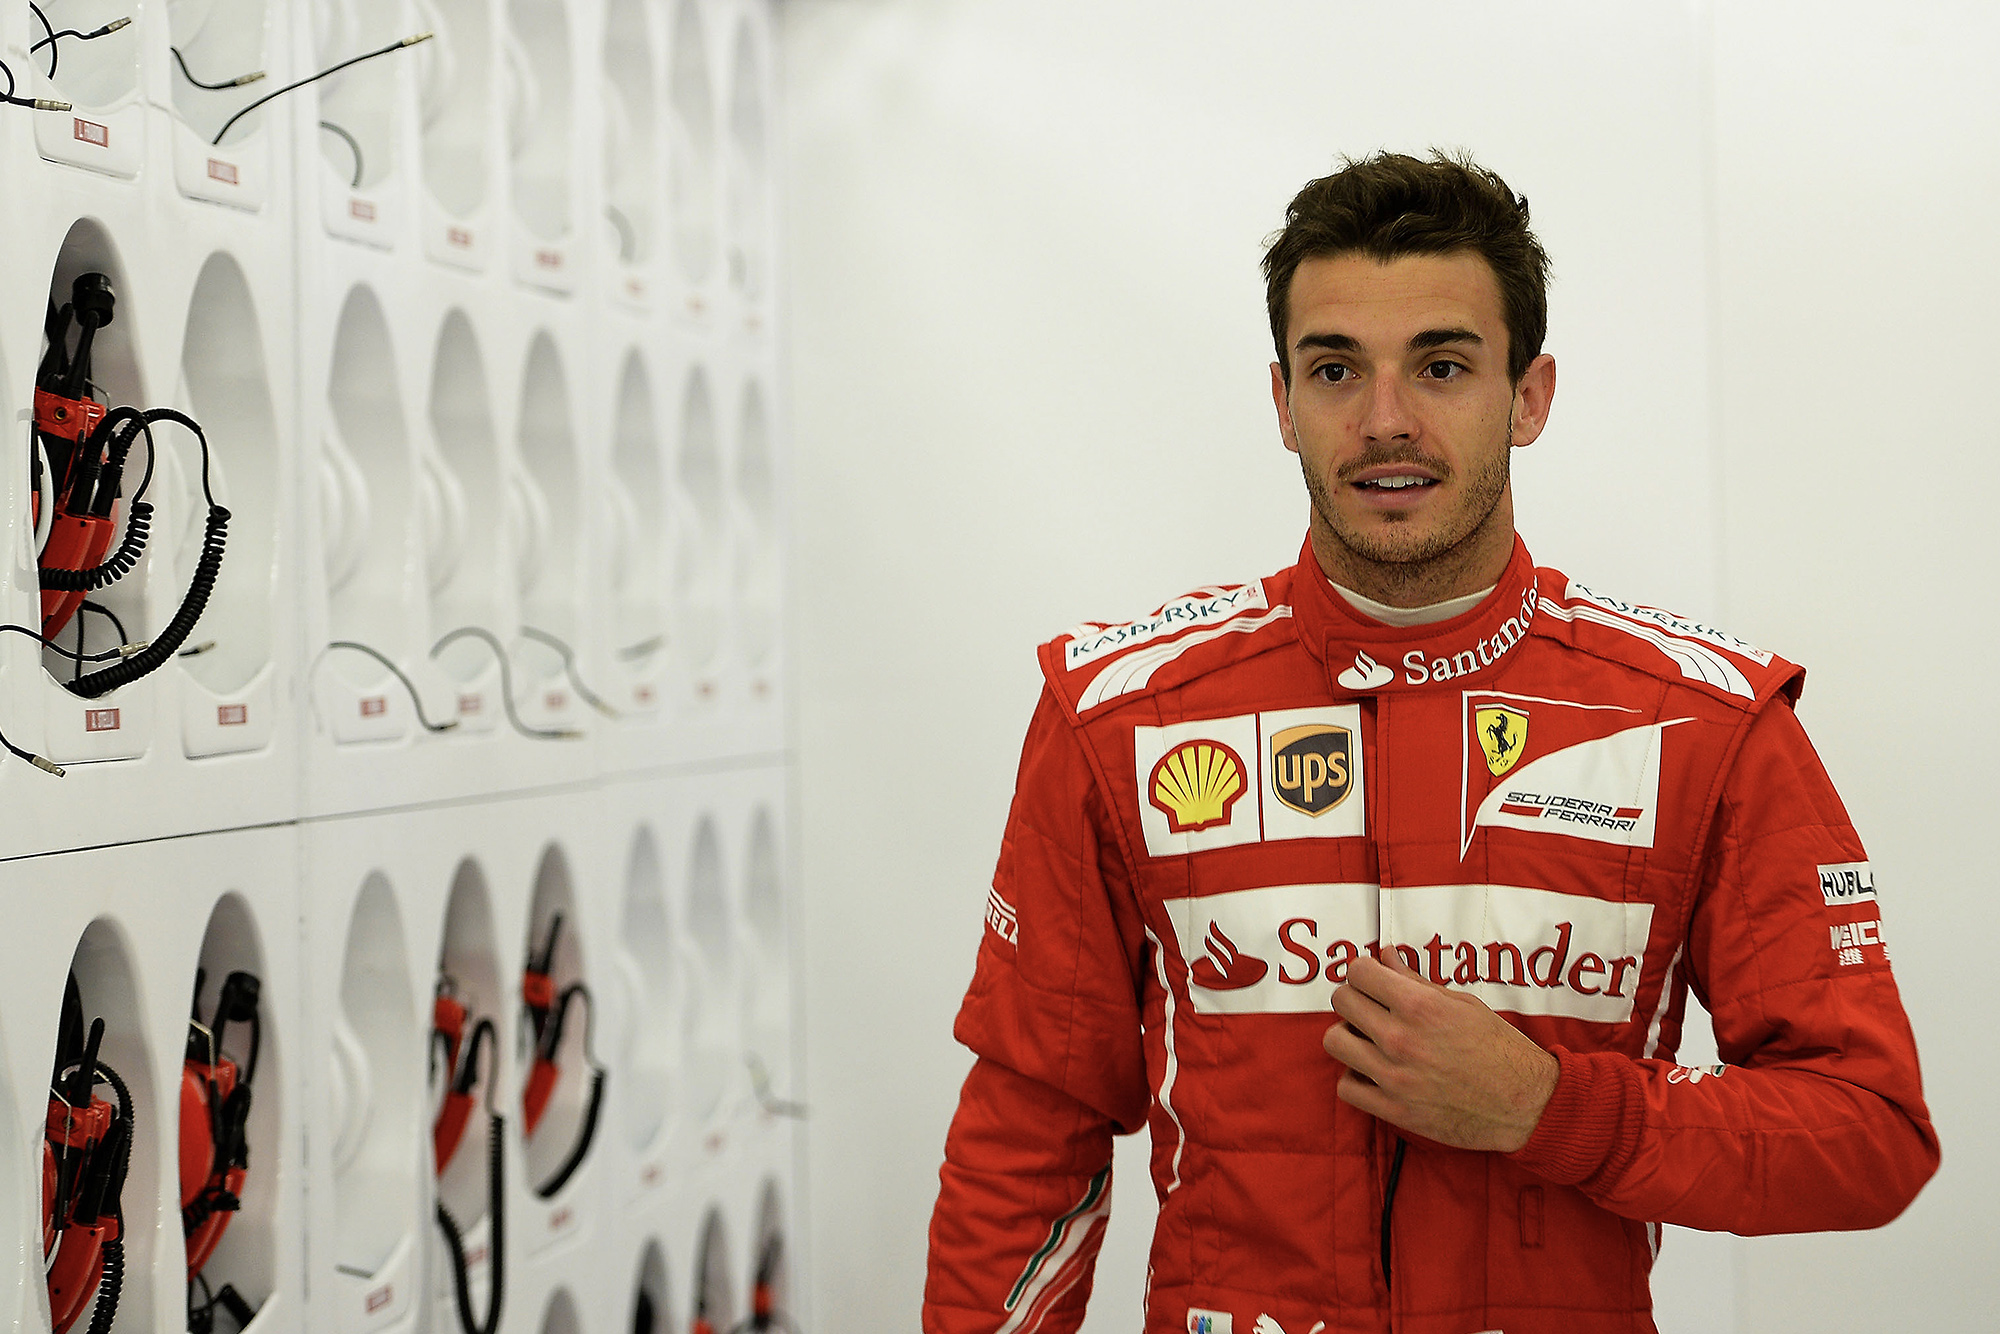 Jules BIanchi in Ferrari overalls at a 2014 F1 test at Silverstone